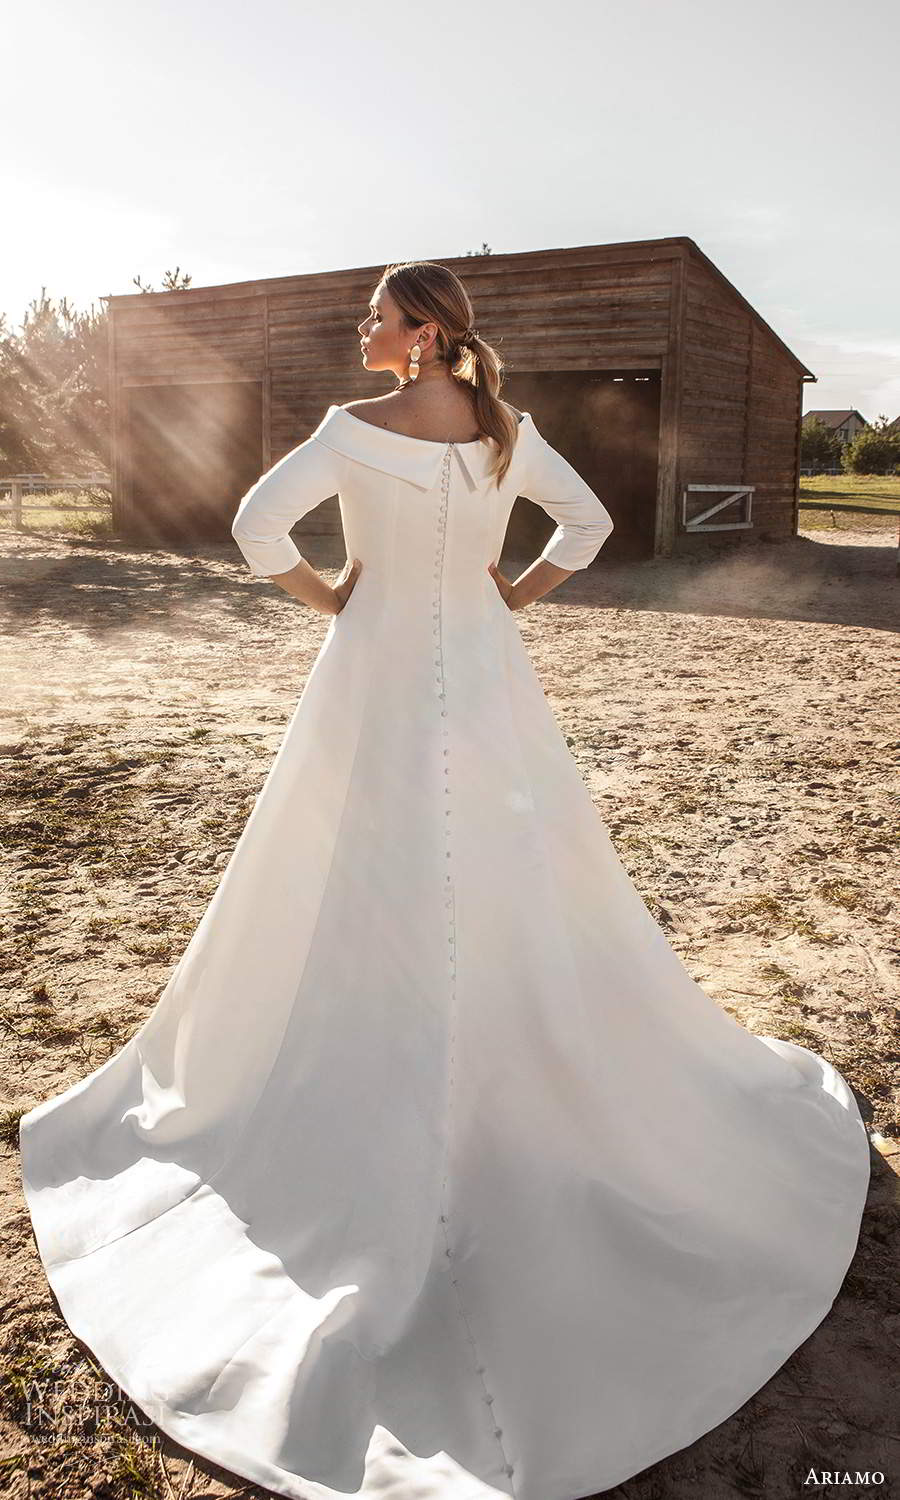 ariamo 2021 plus bridal 3 quarter sleeves off shoulder neckline clean minimalist a line ball gown wedding dress (13) bv